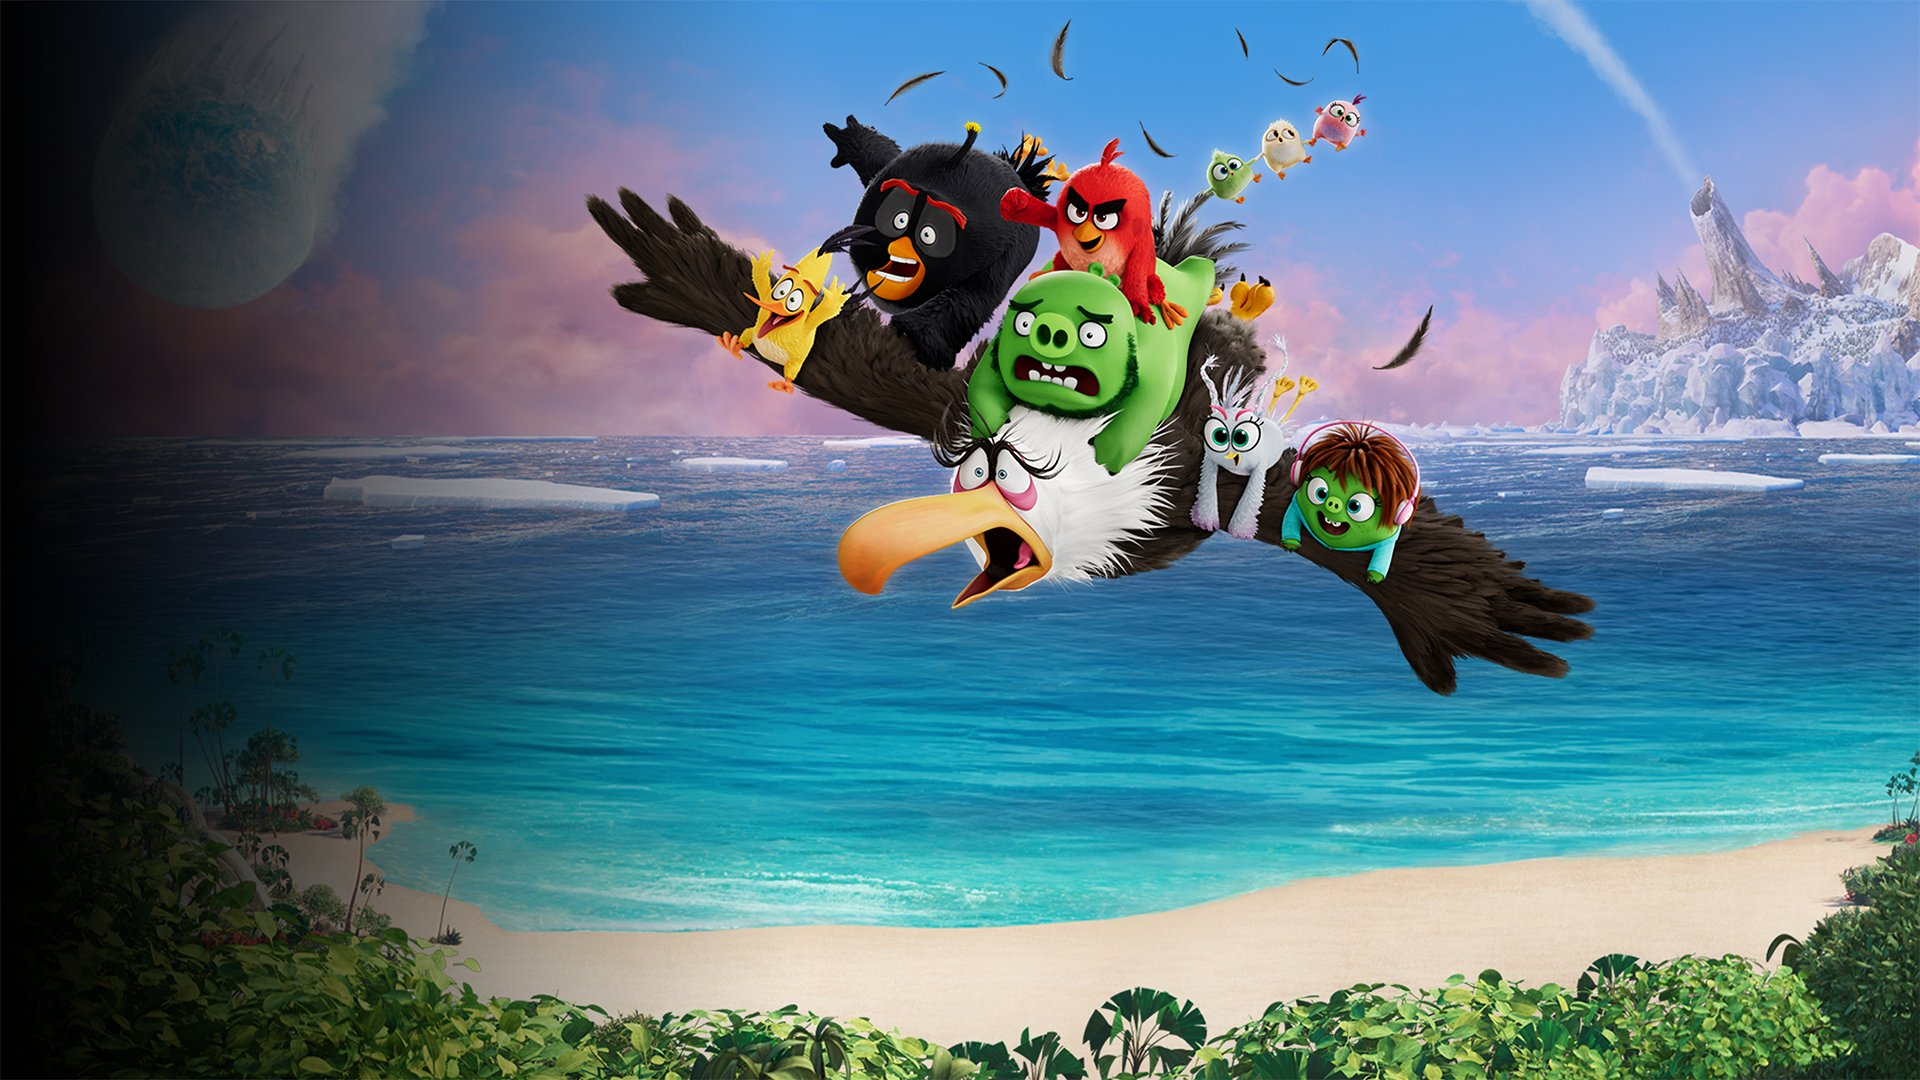 fond Angry Birds : Copains comme cochons - Extrait 1